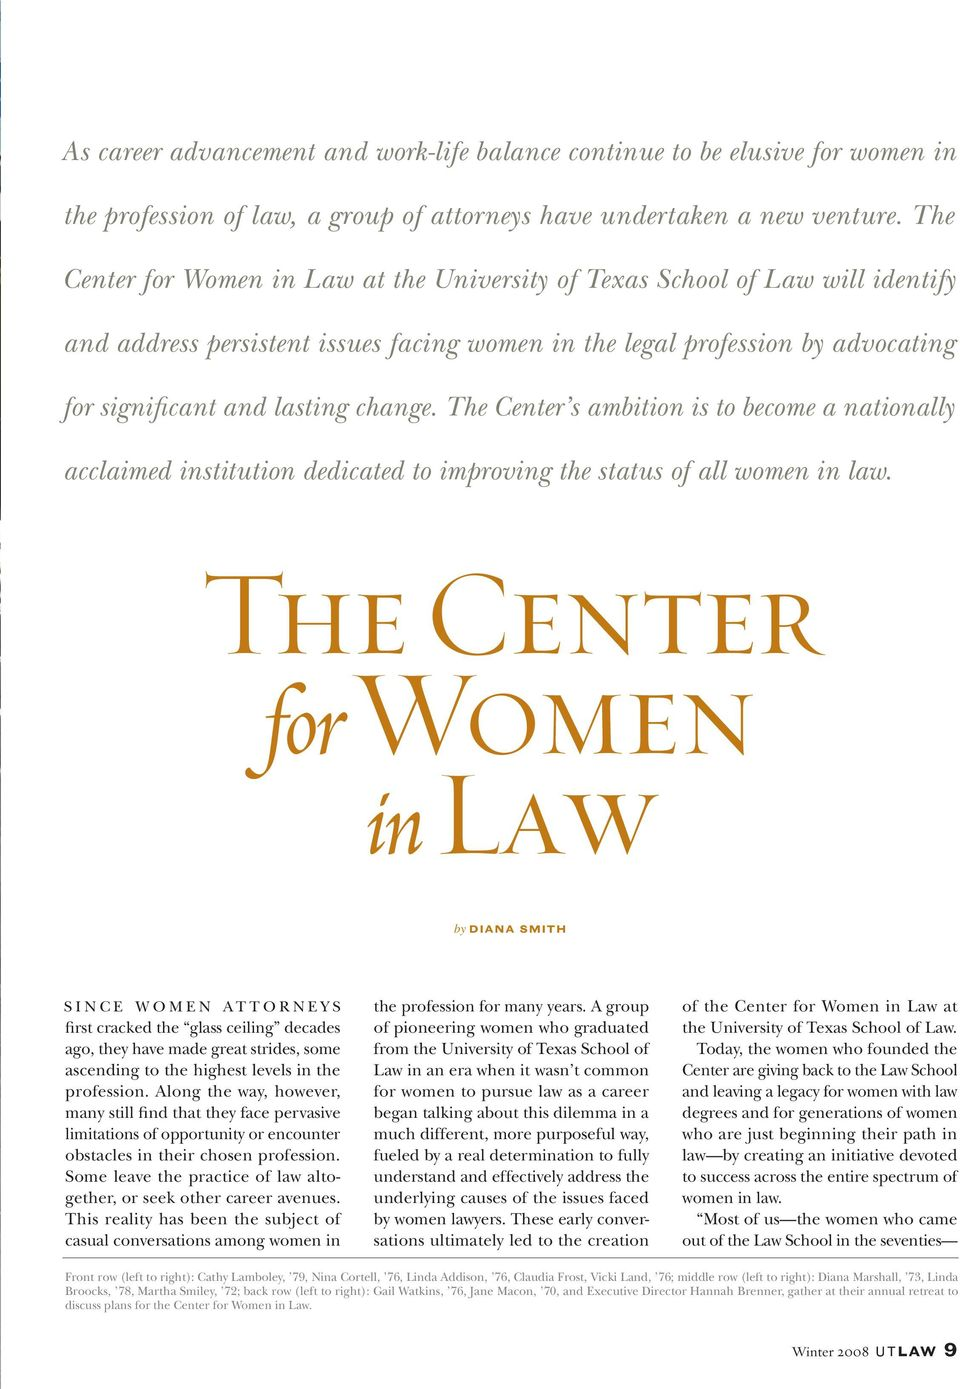 The Center s ambition is to become a nationally acclaimed institution dedicated to improving the status of all women in law.